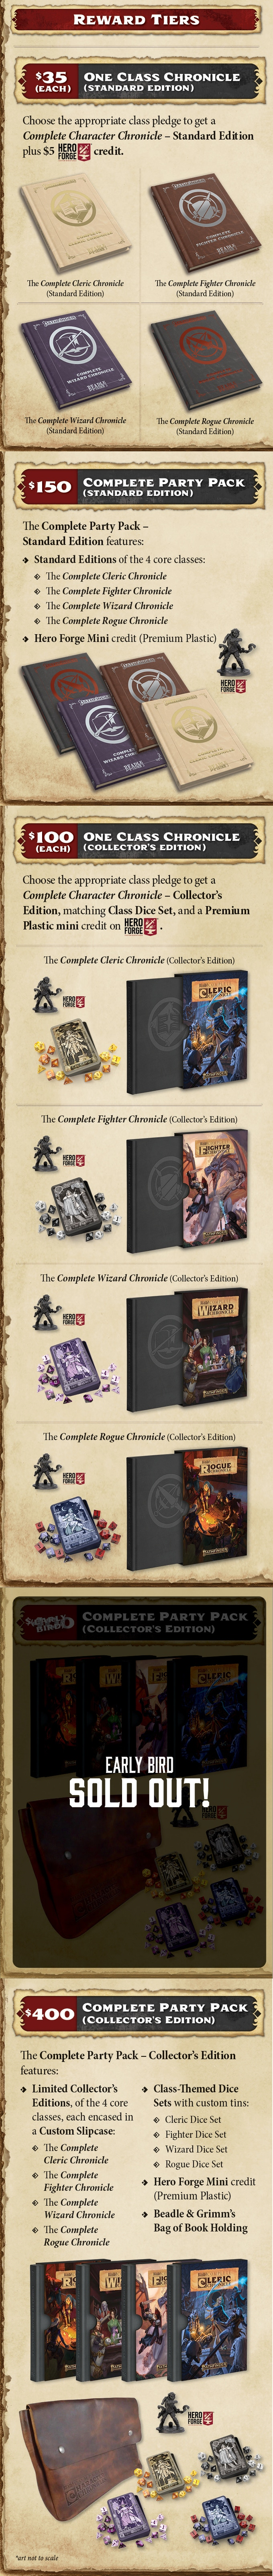 Character Chronicles Reward Tiers - Beadle & Grimms